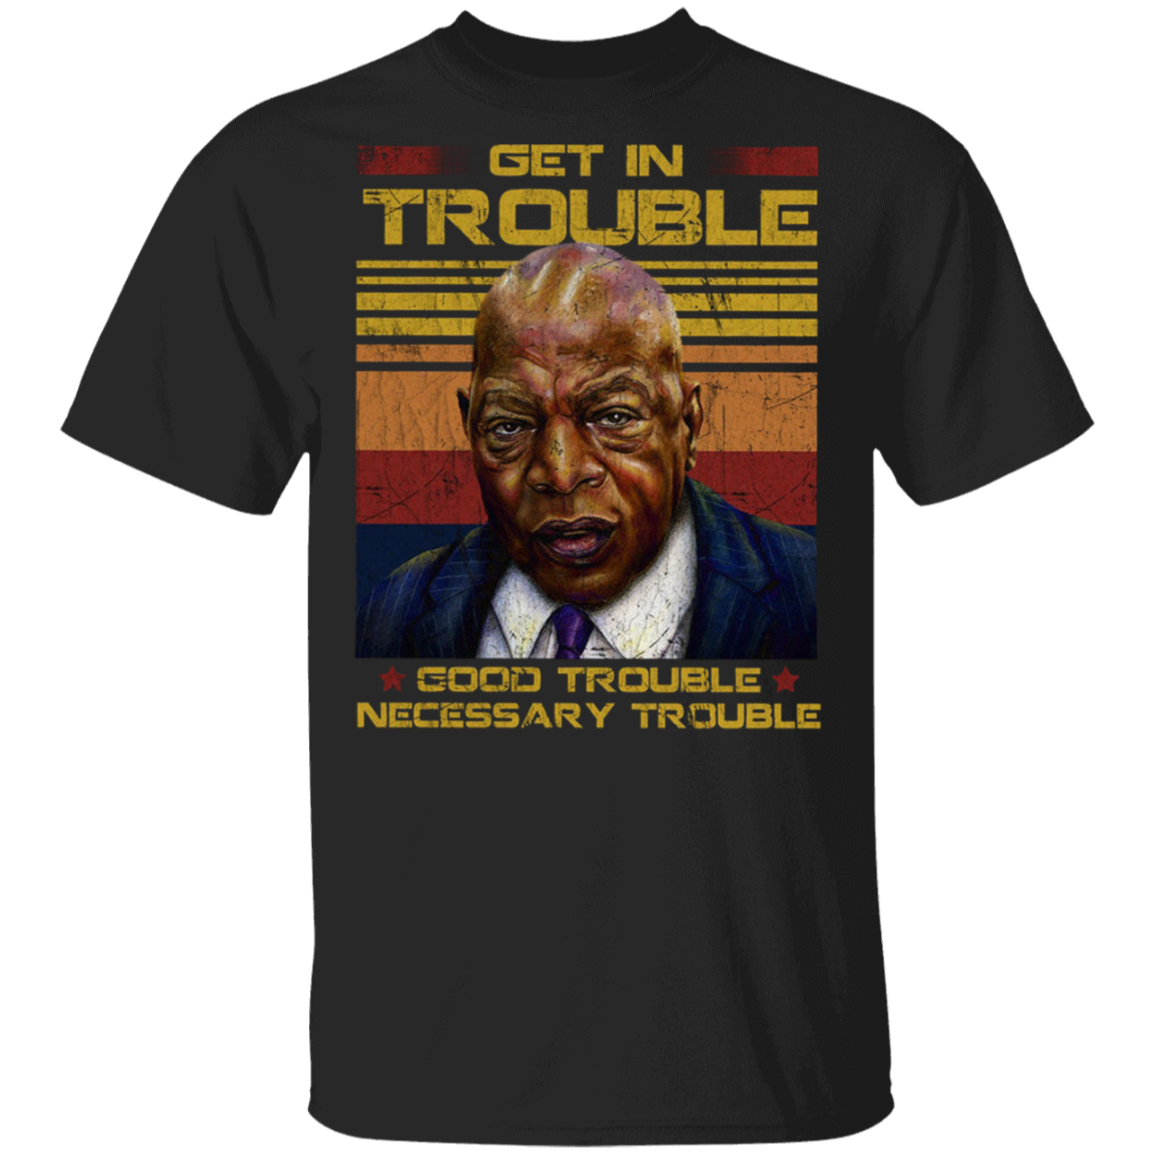 John Lewis Get In Trouble Good Trouble Necessary Trouble T-Shirt Civil Rights Icon Shirt